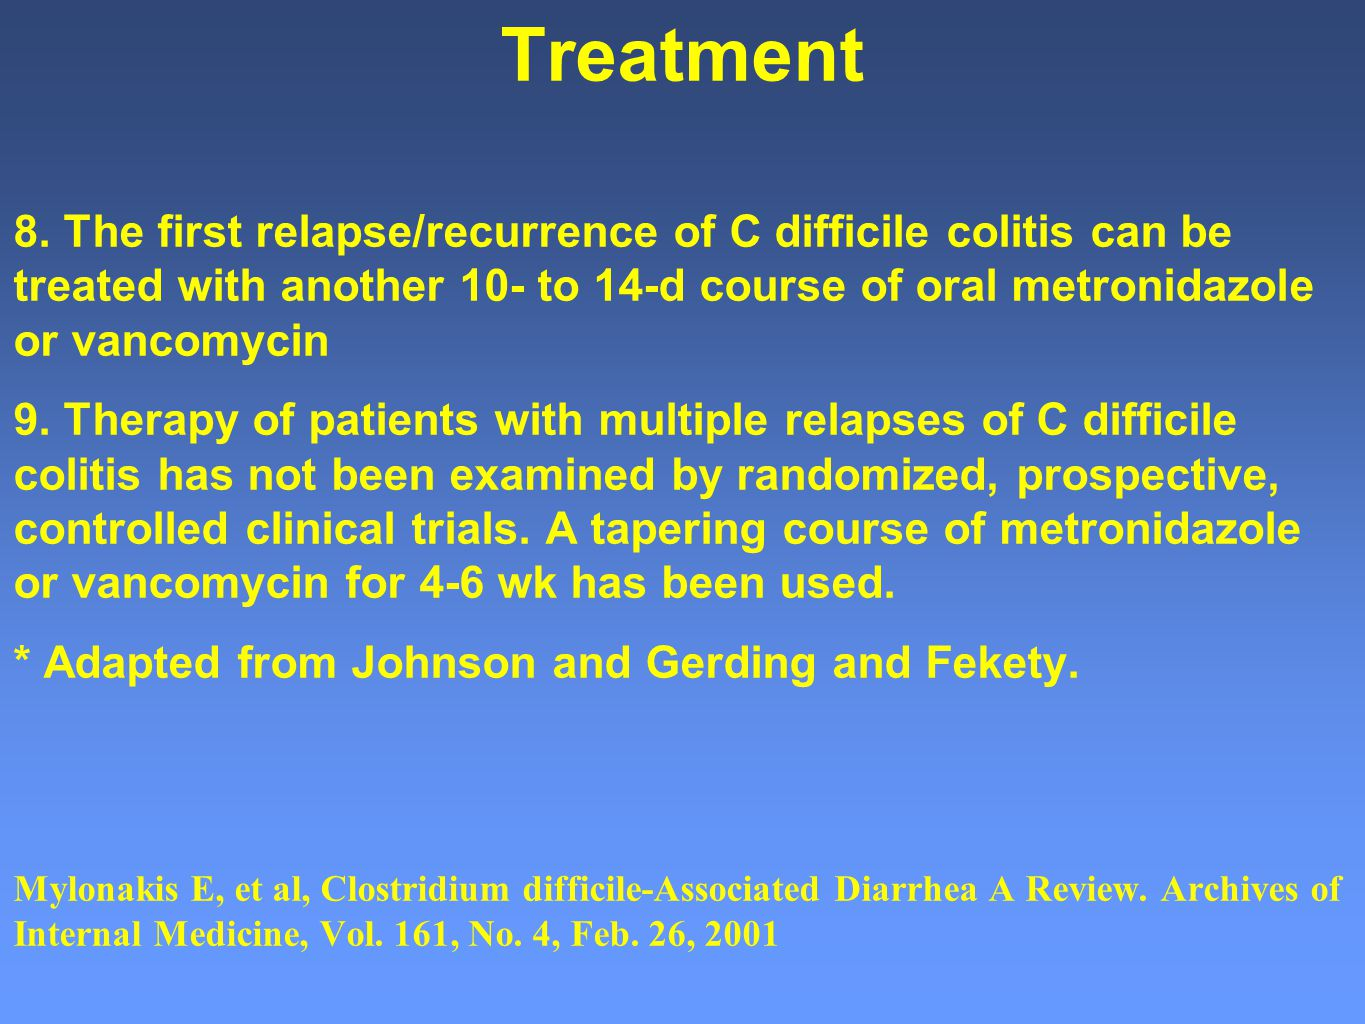 Treatment 8. The first relapse/recurrence of C difficile colitis can be treated with another 10- to 14-d course of oral metronidazole or vancomycin.